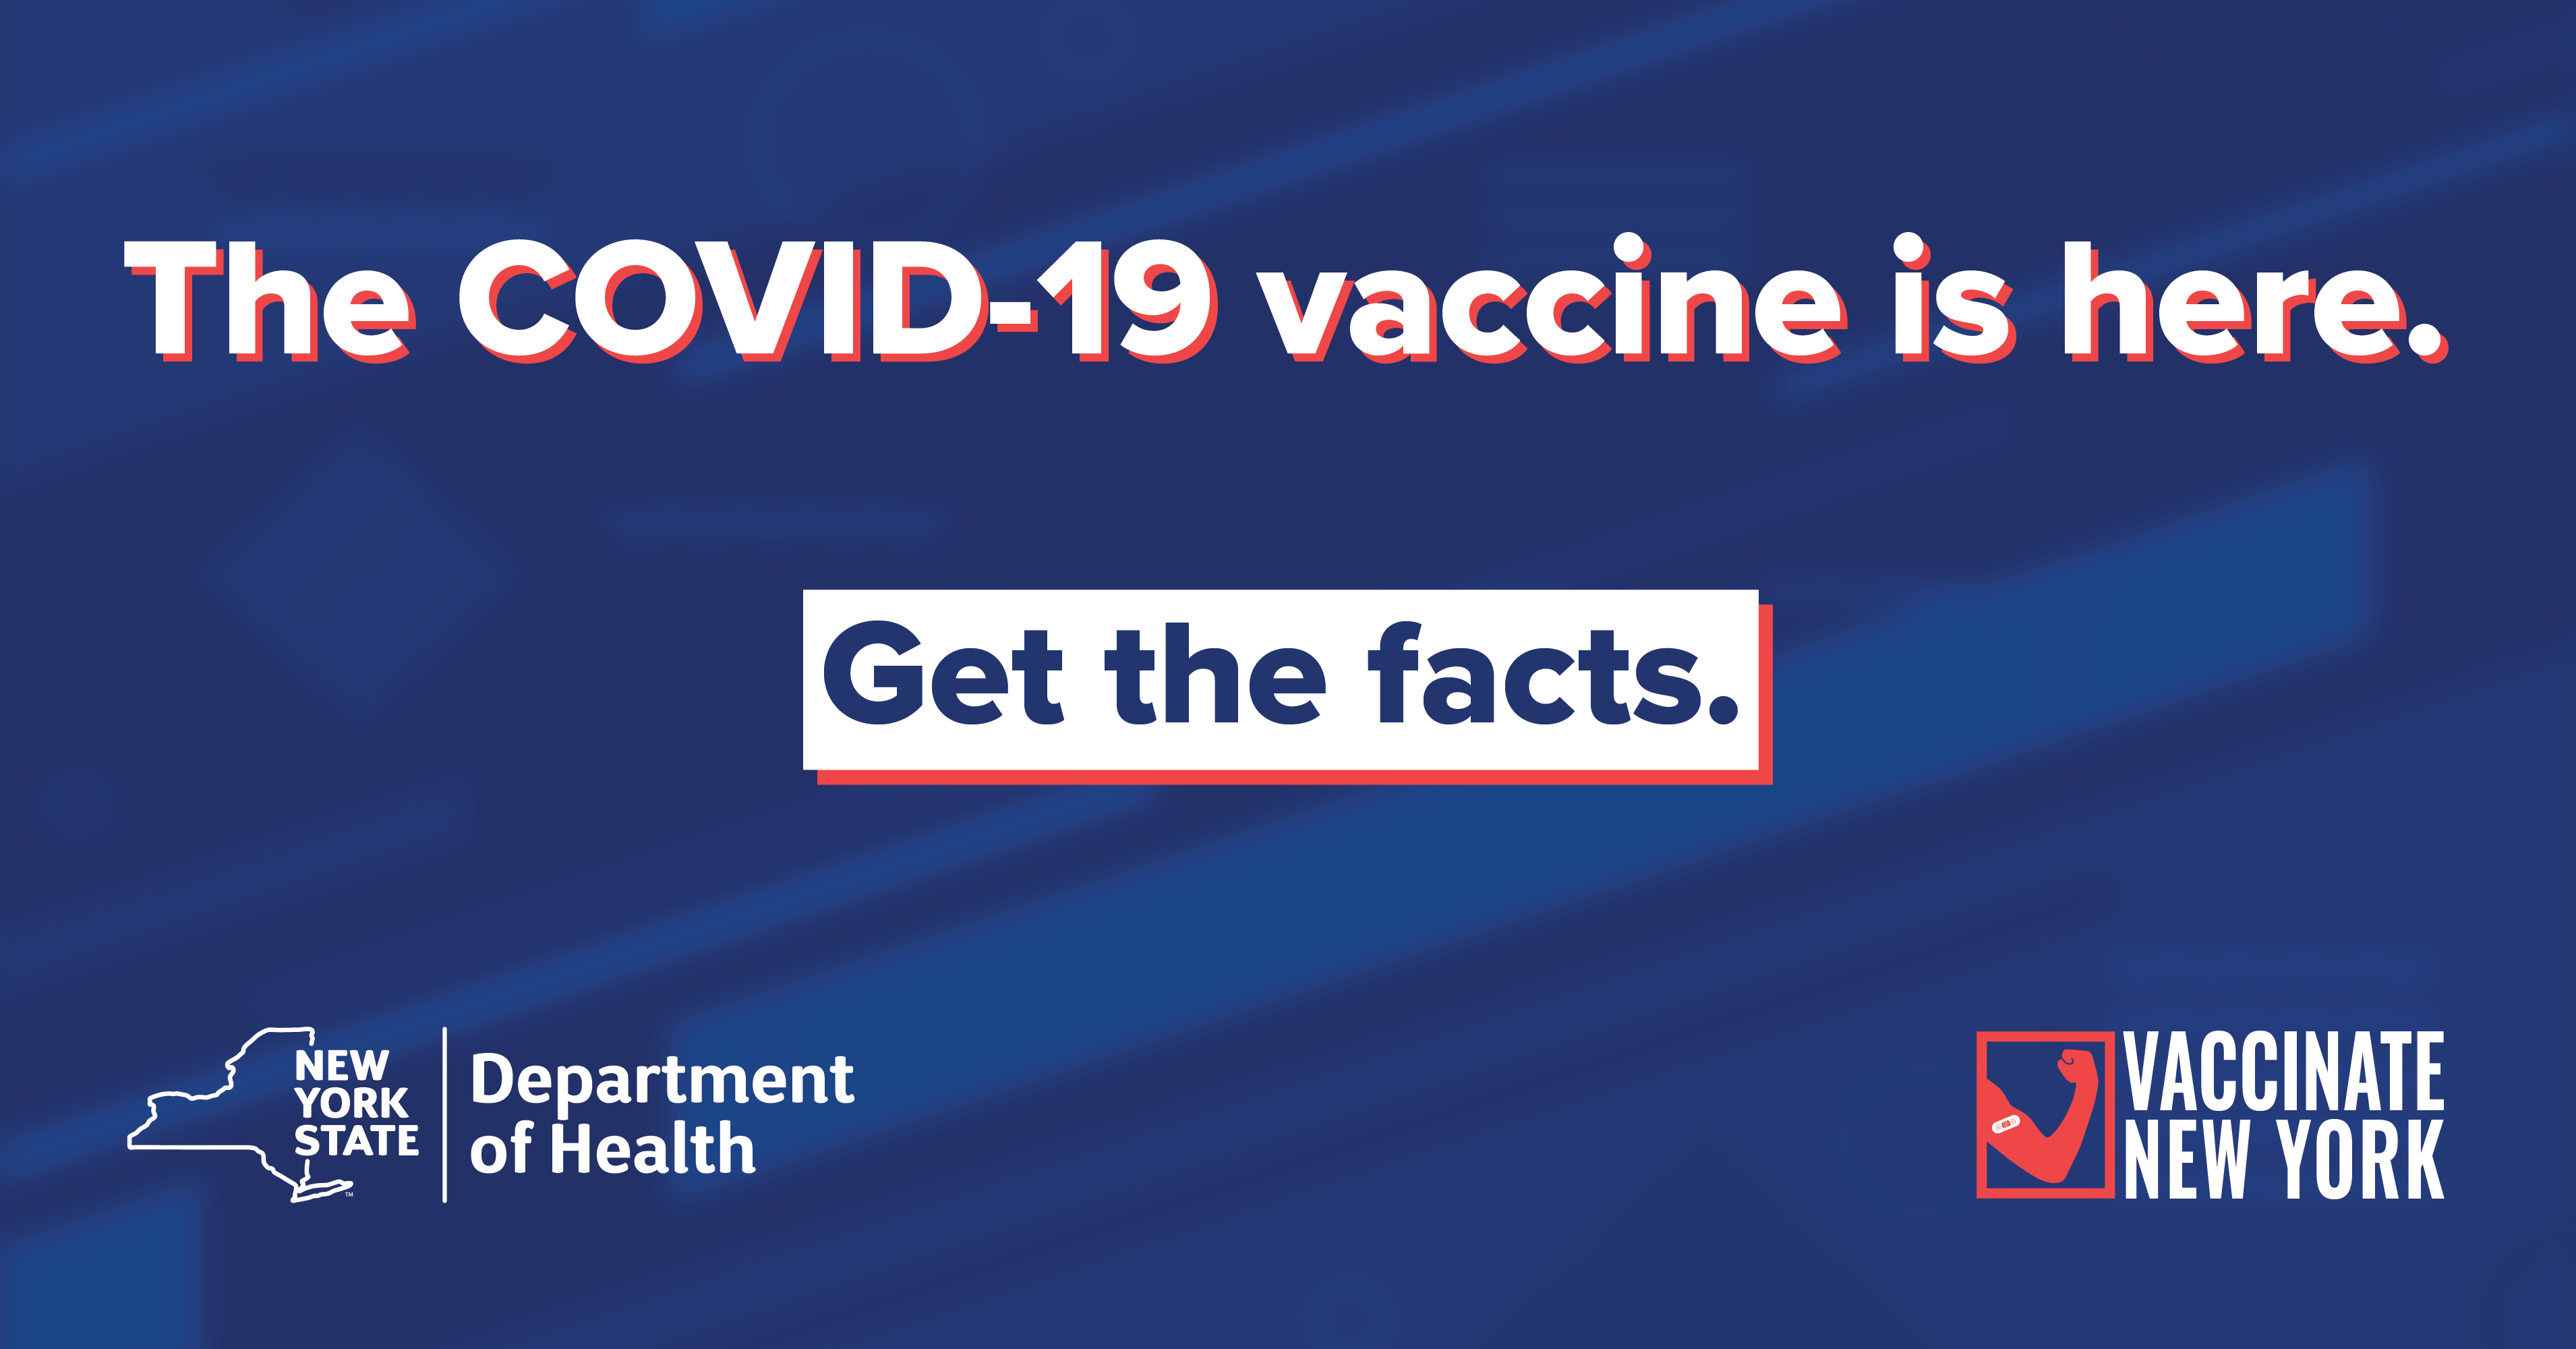 COVID-19 Vaccine: Get the Facts